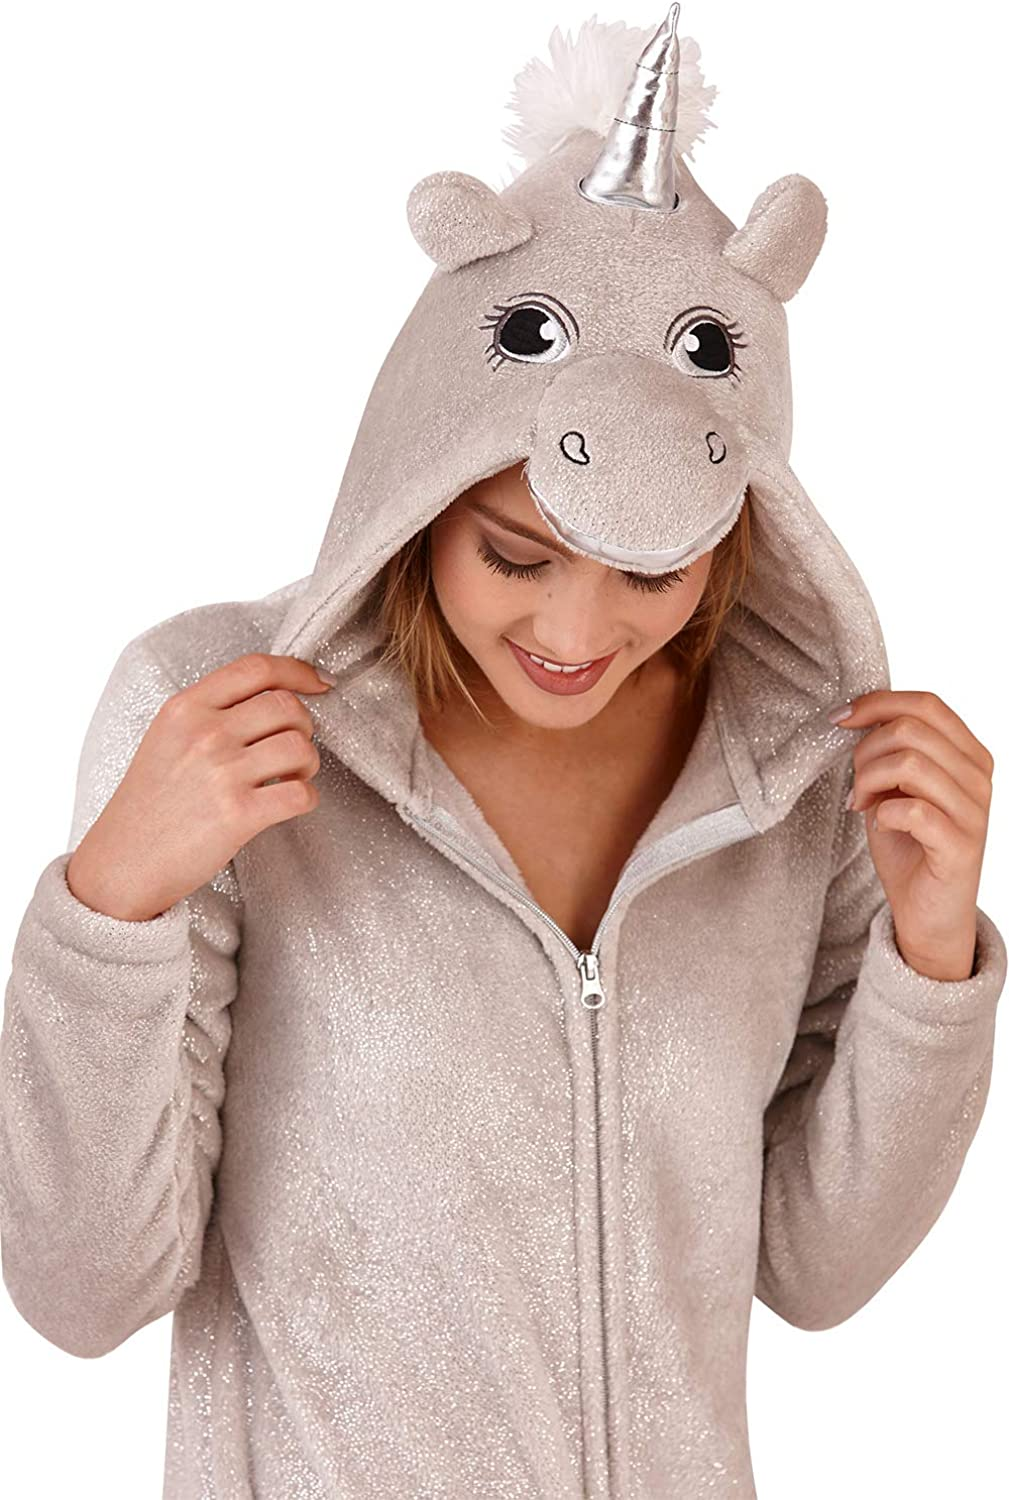 UK 16//18 GladRags/® Womens Ladies Girls 3D Sparkly Silver Unicorn Hooded Onesie All in One Suit Nightwear Size Large UK 16-18 Silver Sparkle Unicorn Onesie, Large